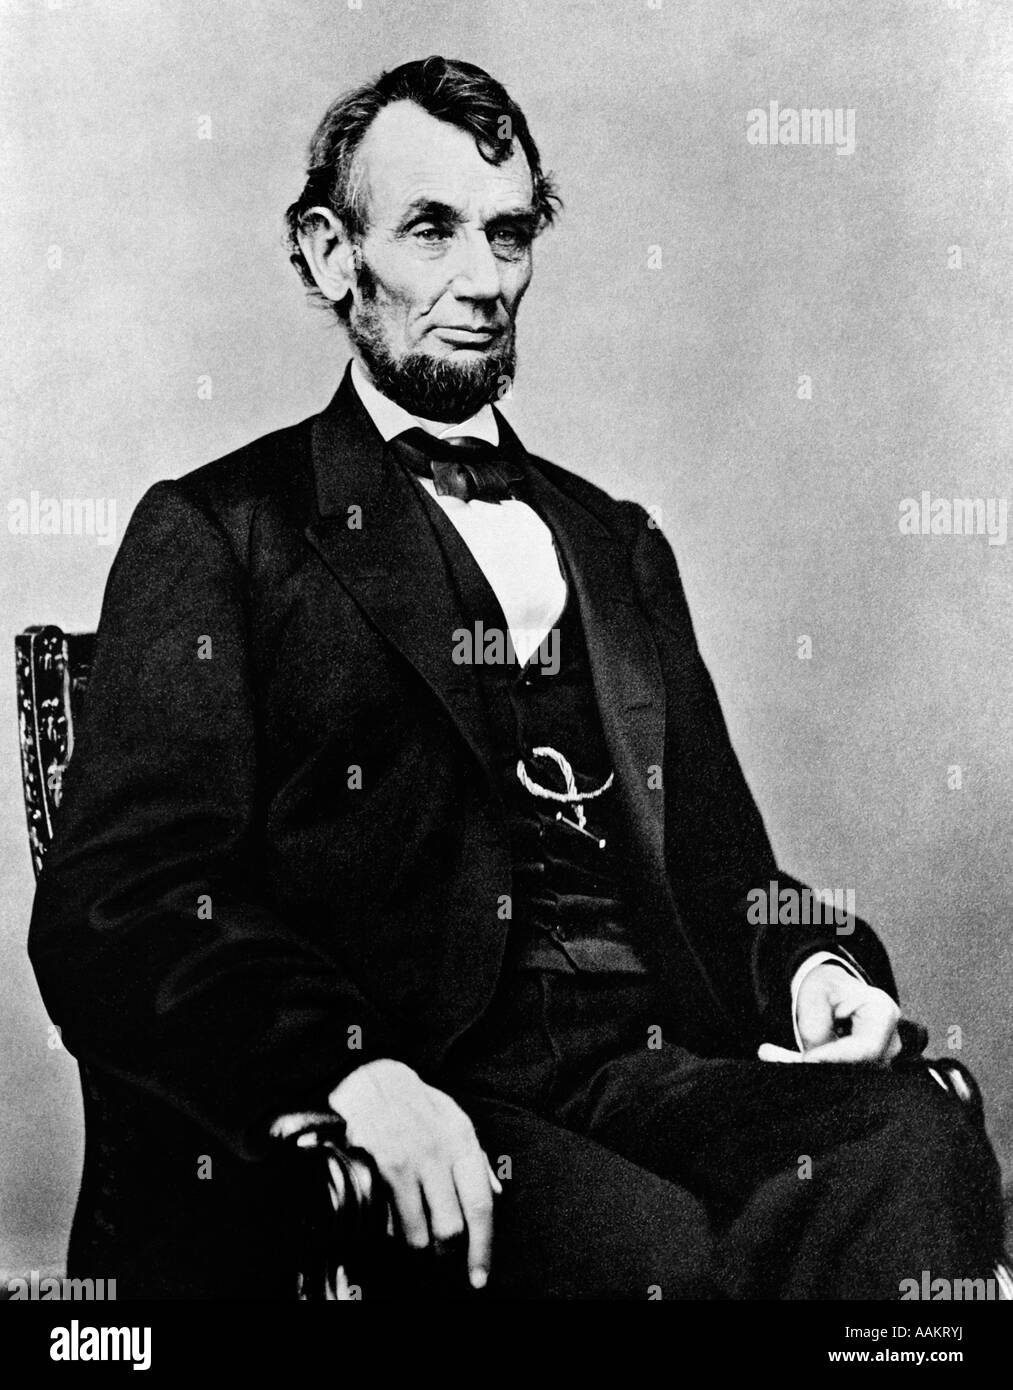 a biography of abraham lincoln the president of the united states The presidency of abraham lincoln began on march 4, 1861, when he was inaugurated as the 16th president of the united states, and ended upon his assassination and.